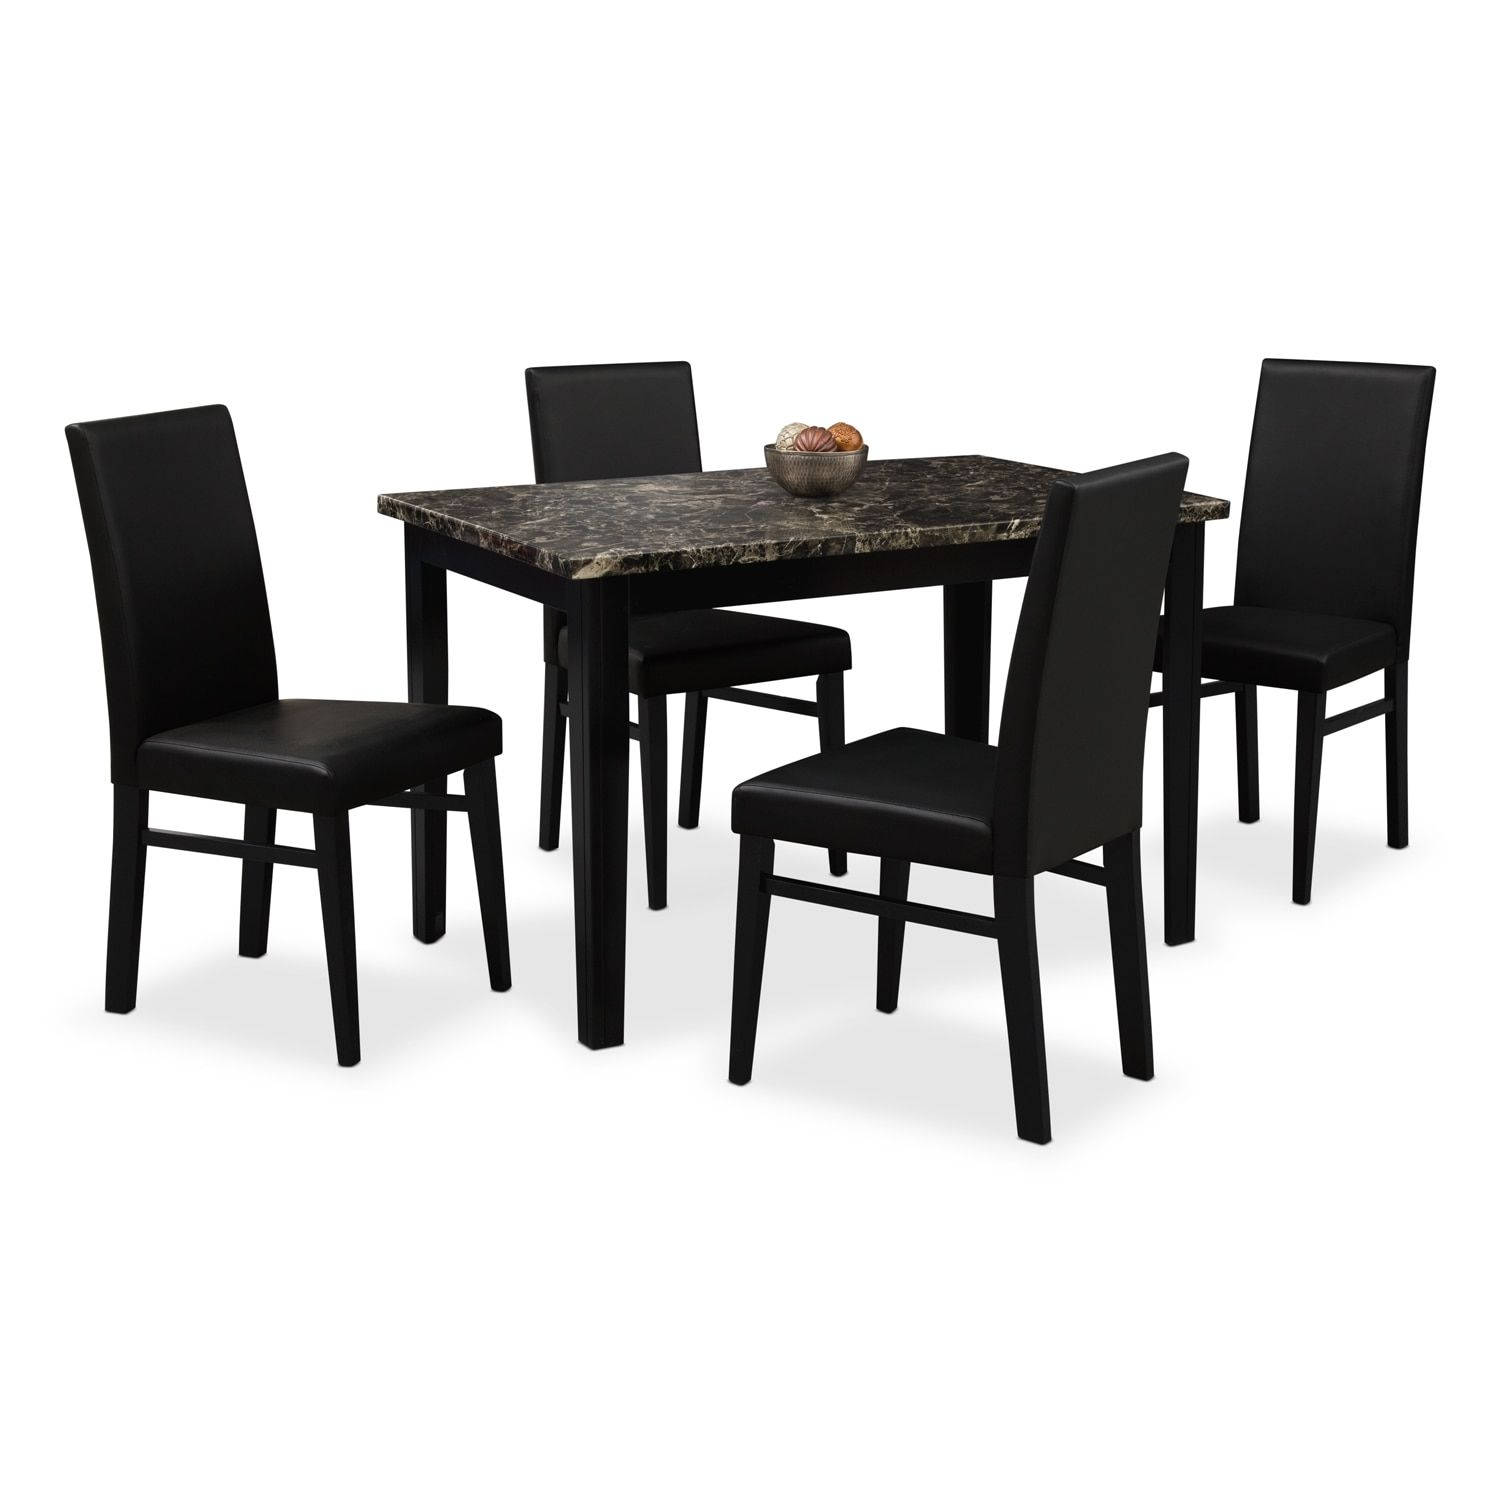 Strange Shadow Chair Black In 2019 Products White Dining Room Bralicious Painted Fabric Chair Ideas Braliciousco